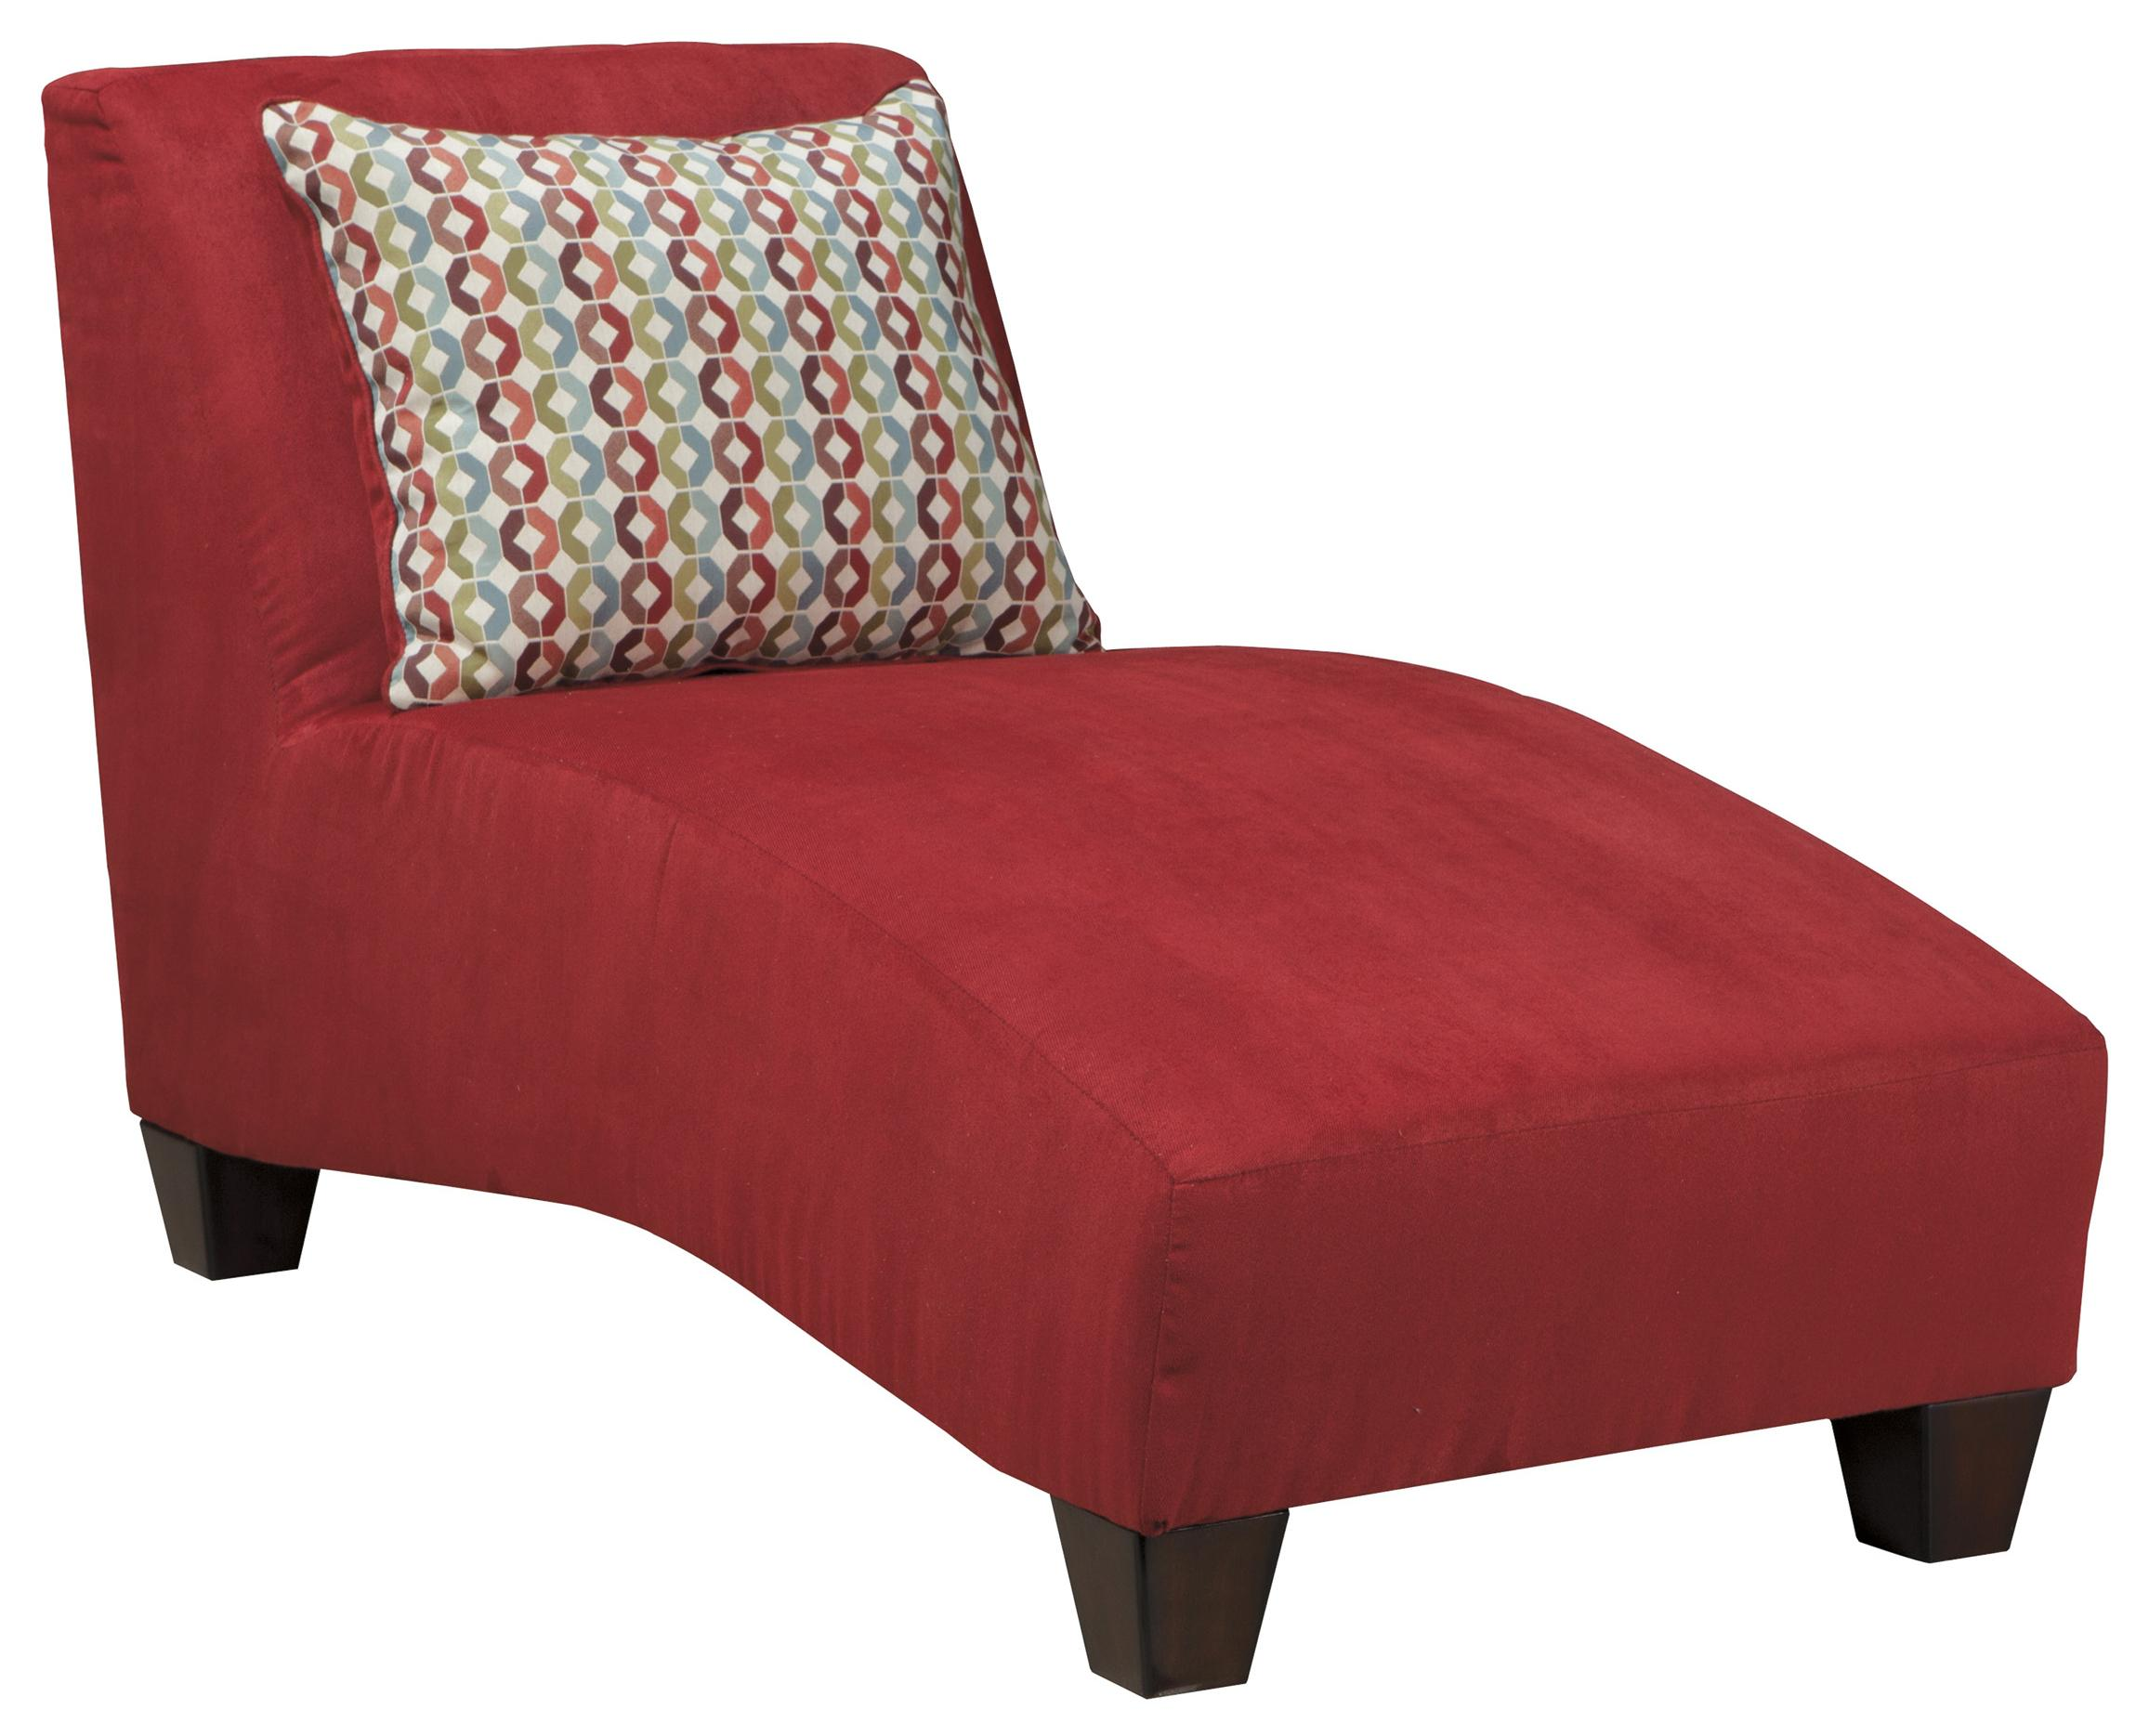 Signature Design by Ashley Hannin - Spice Chaise - Item Number: 9580115